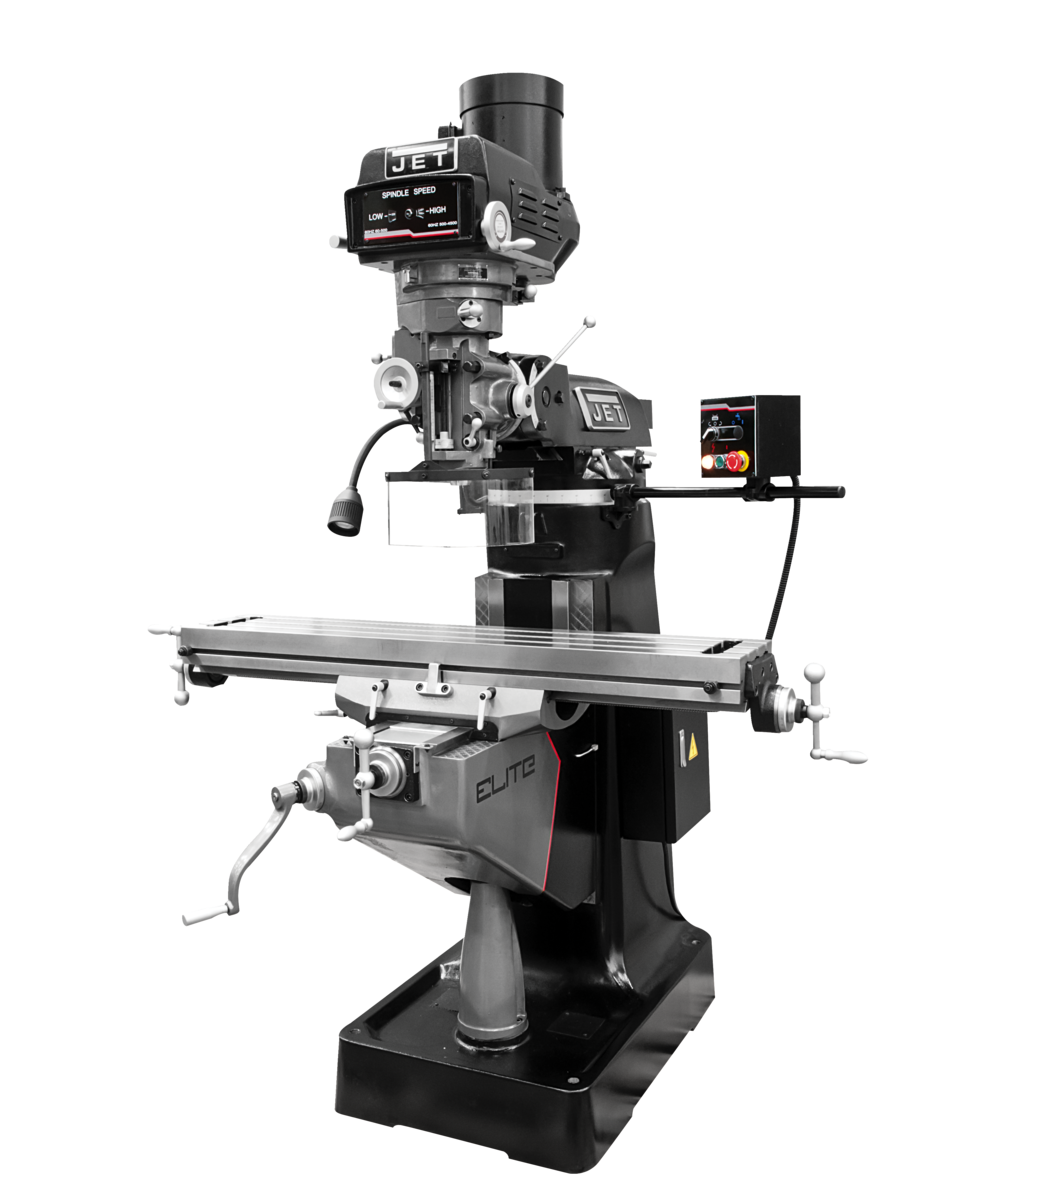 ETM-949 Mill with 3-Axis Newall DP700 (Quill) DRO and X, Y, Z-Axis JET Powerfeeds